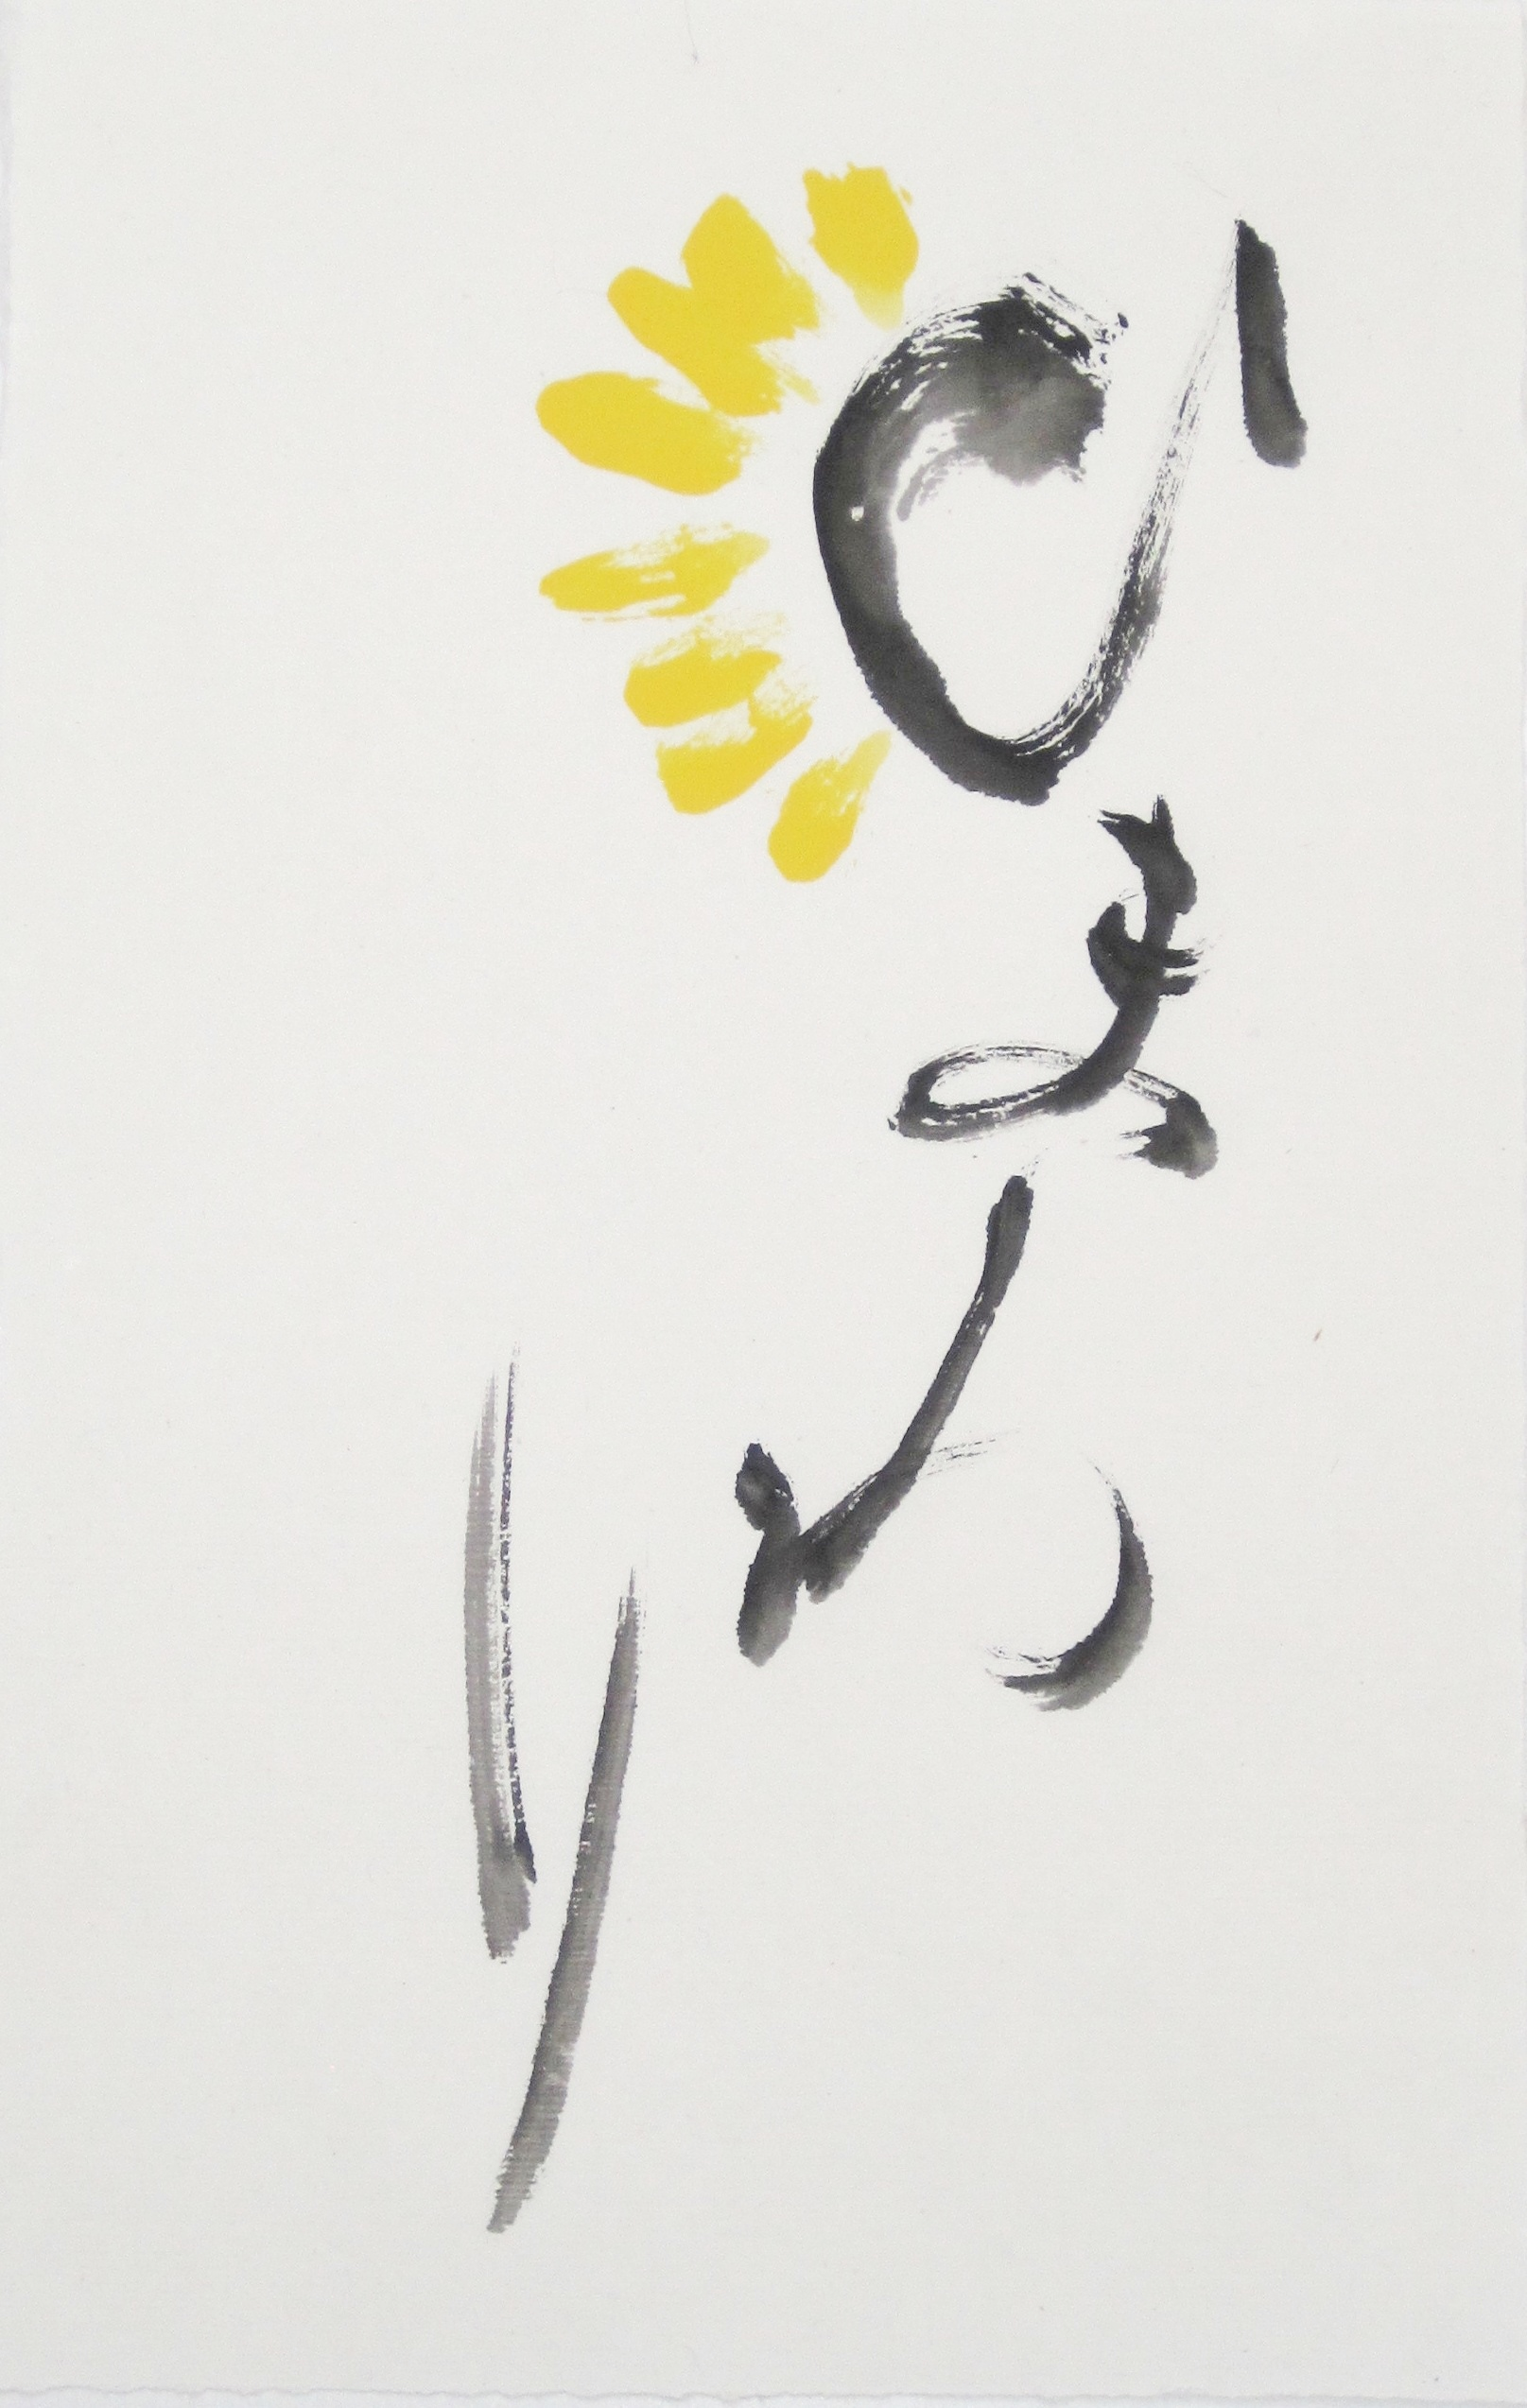 Himawari (Sunflower)